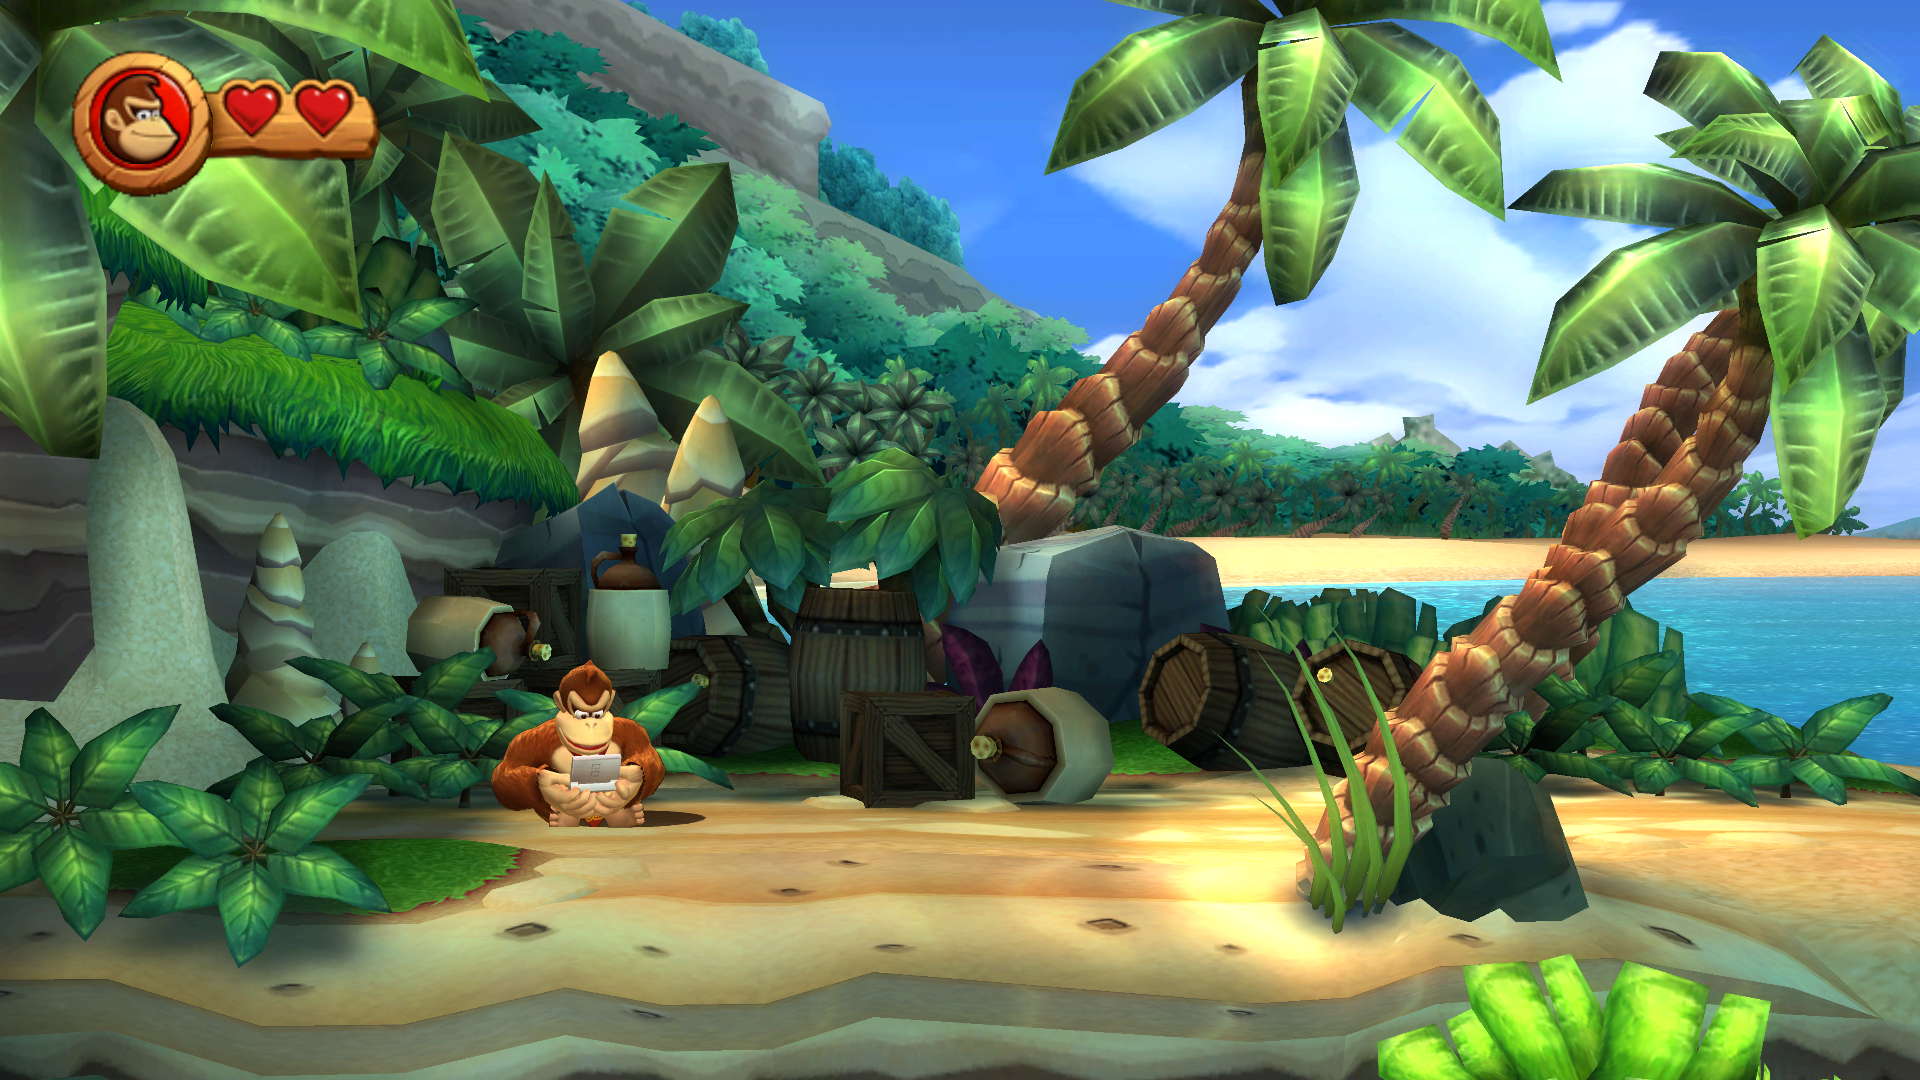 Donkey Kong Country 3 Iphone Wallpaper Snes Donkey Kong Country Donkey Kong Disney Video Games